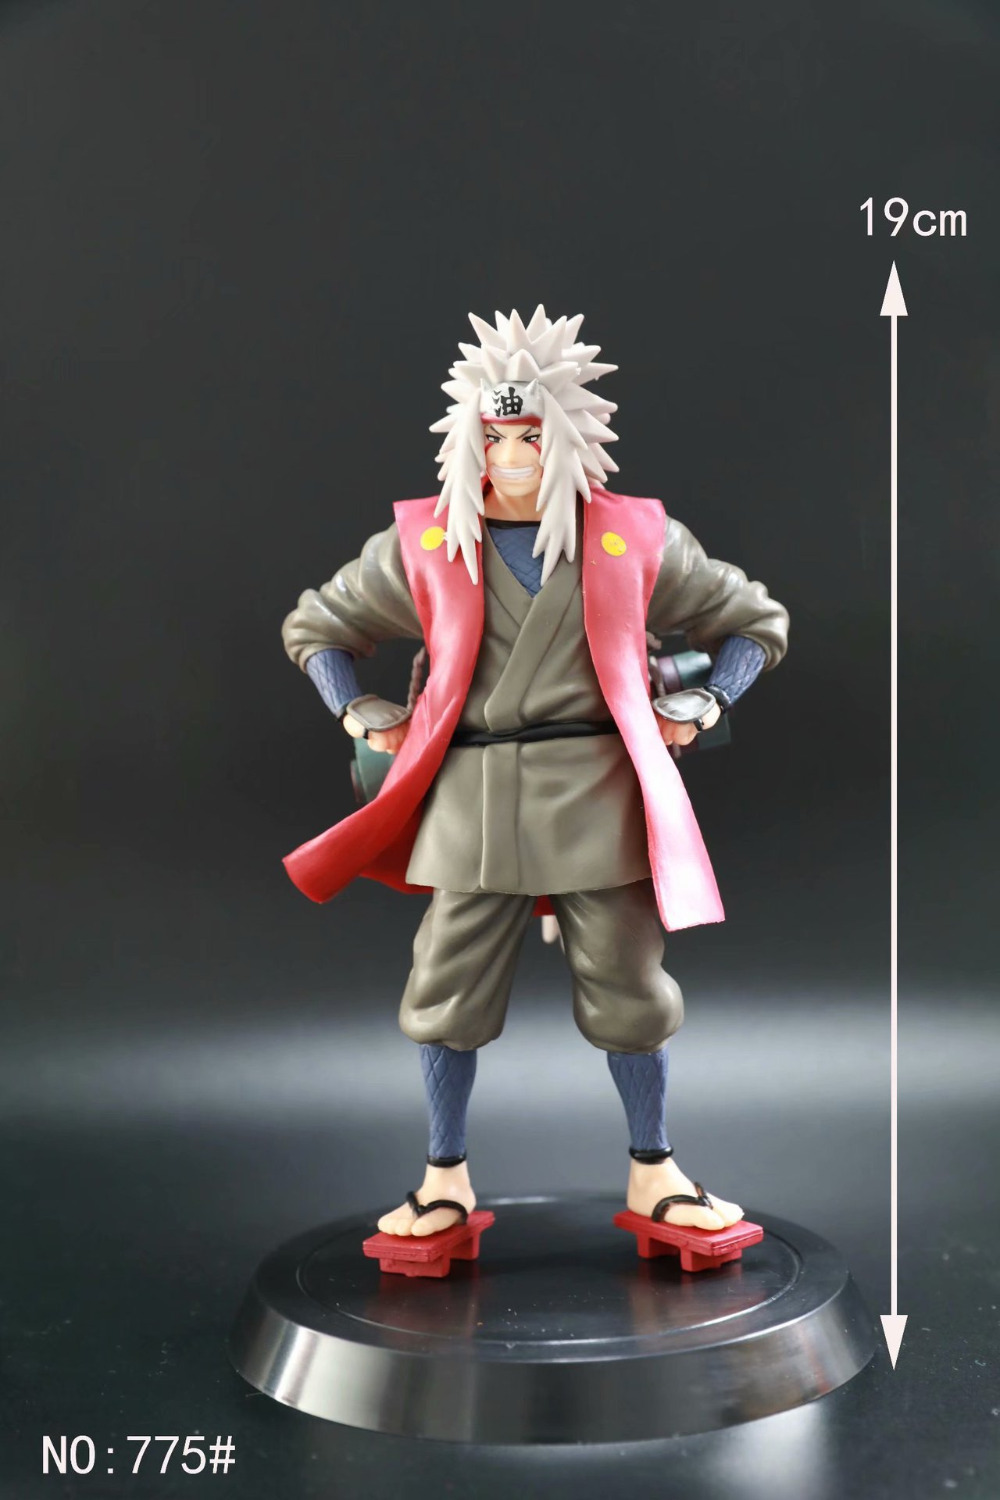 19cm Naruto Jiraiya Action Figure PVC New Collection figures toys brinquedos Collection 2pcs set 13cm naruto kurama kyuubi anime action figure pvc new collection figures toys brinquedos collection